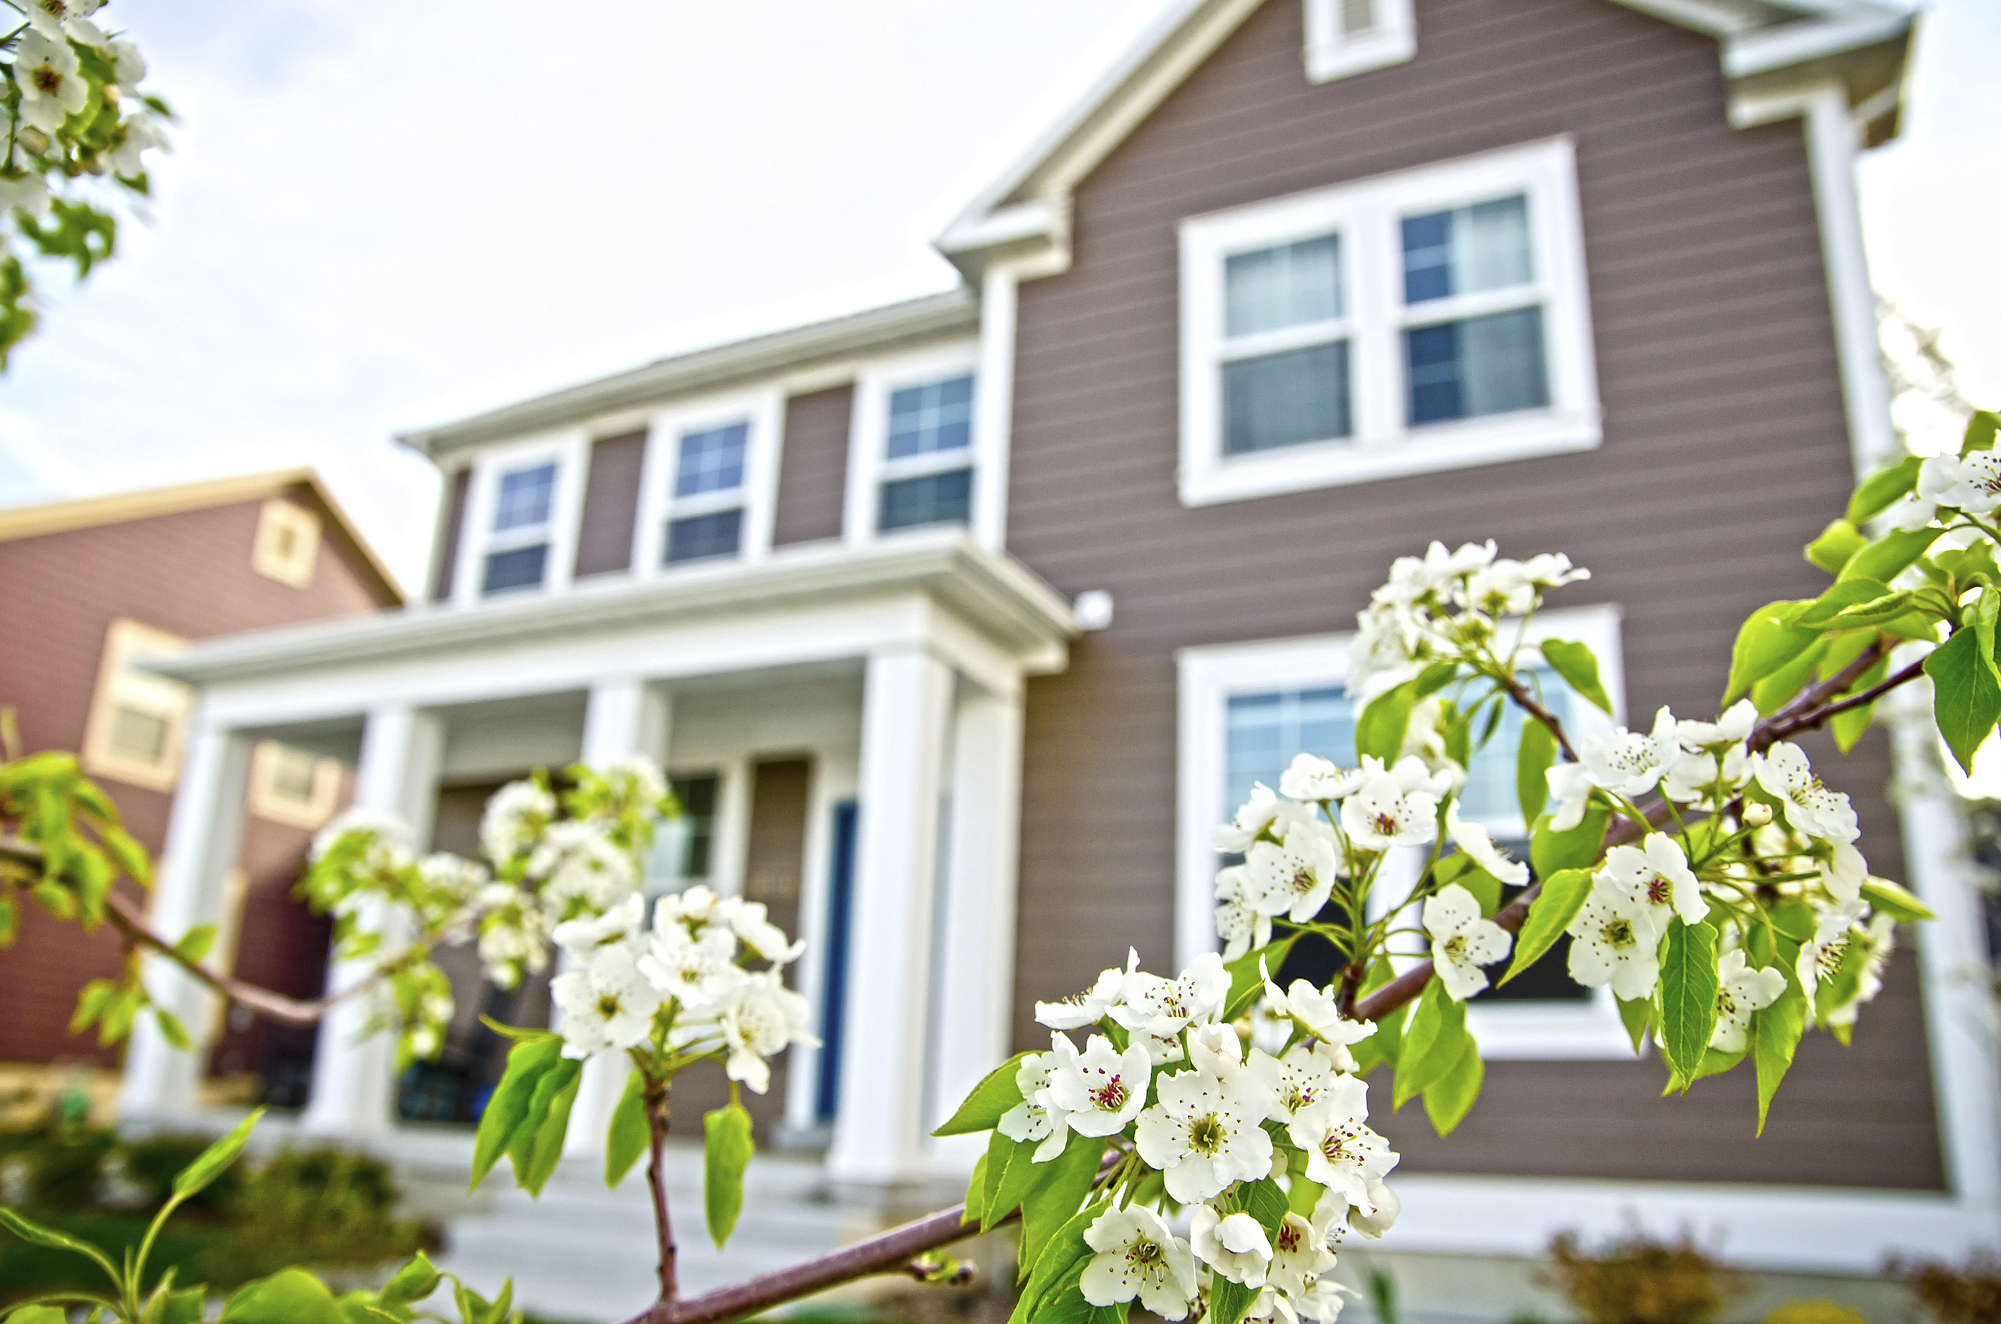 Spring Checklist For Your Home!